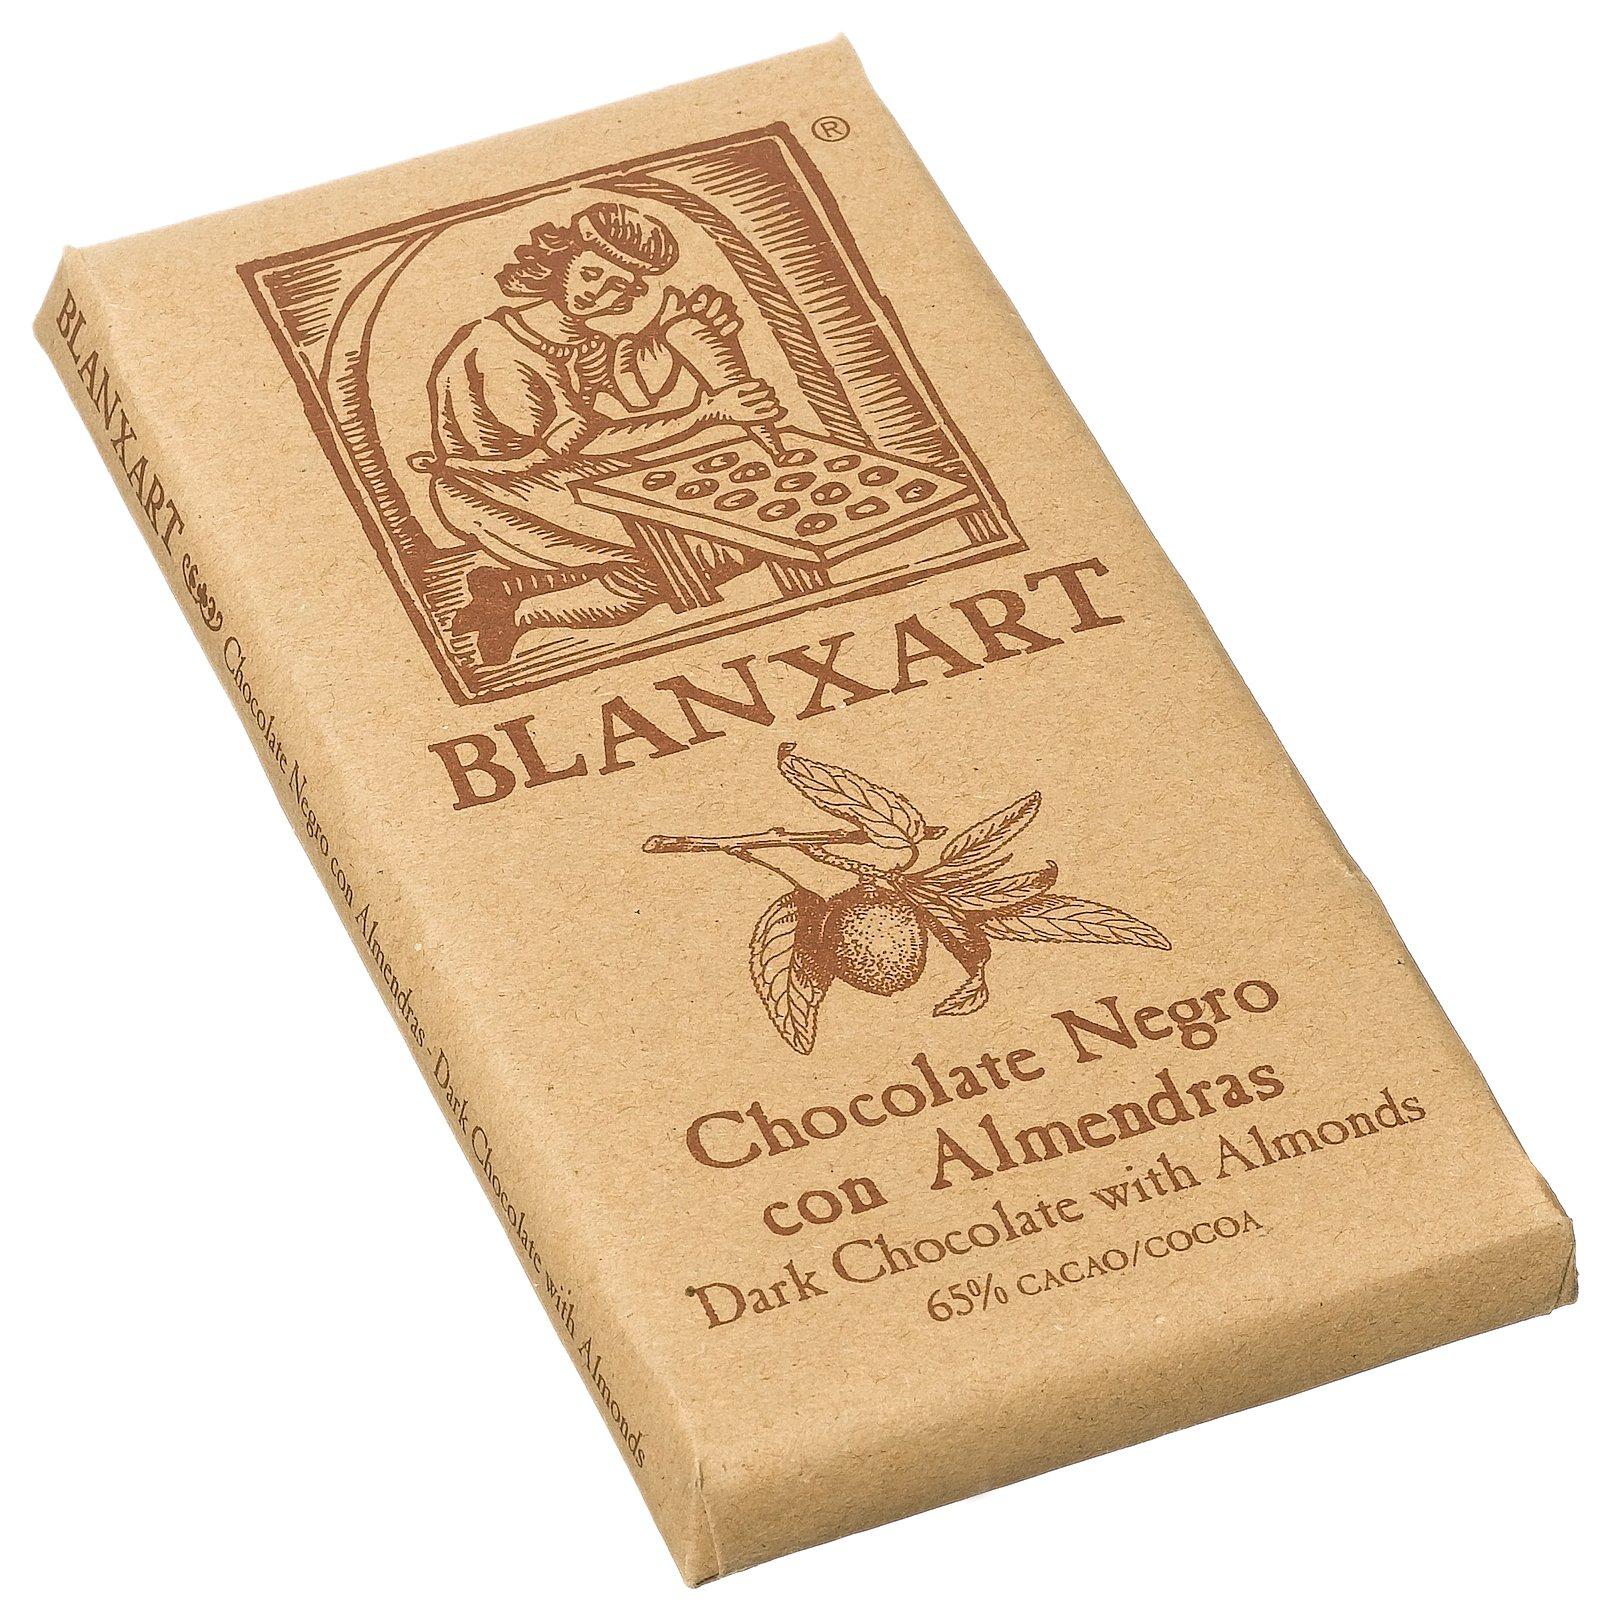 Blanxart Dark Chocolate with Almonds, 7 oz